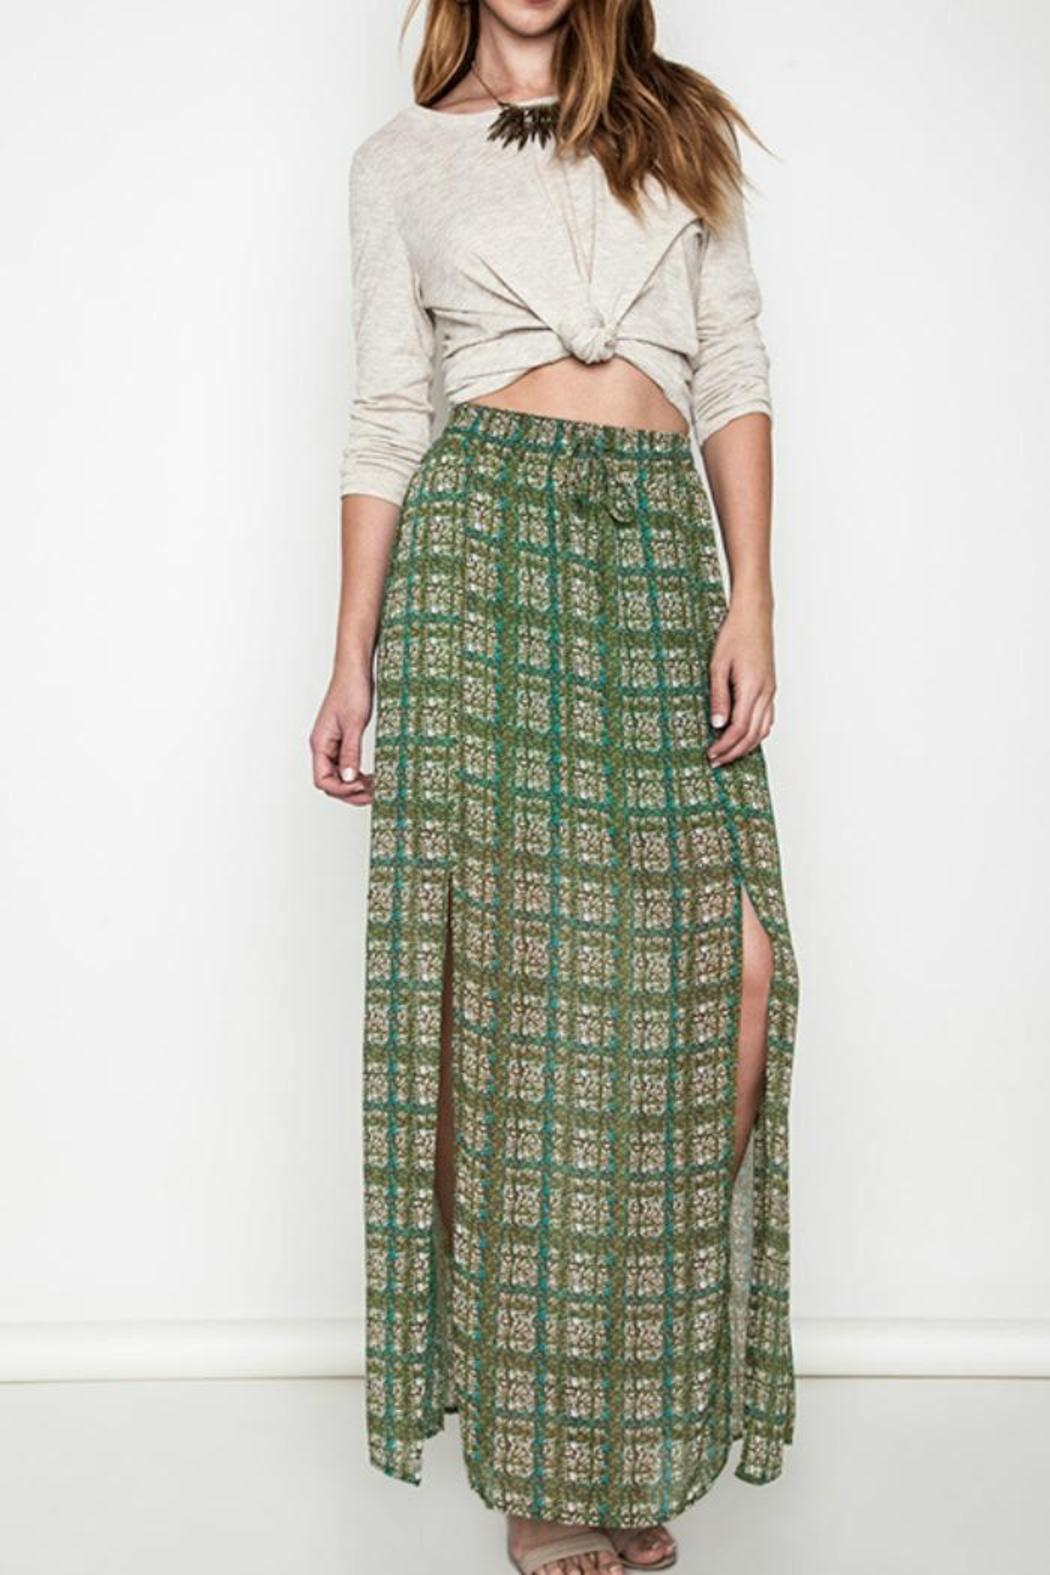 Umgee USA Green Printed Maxi Skirt - Front Cropped Image